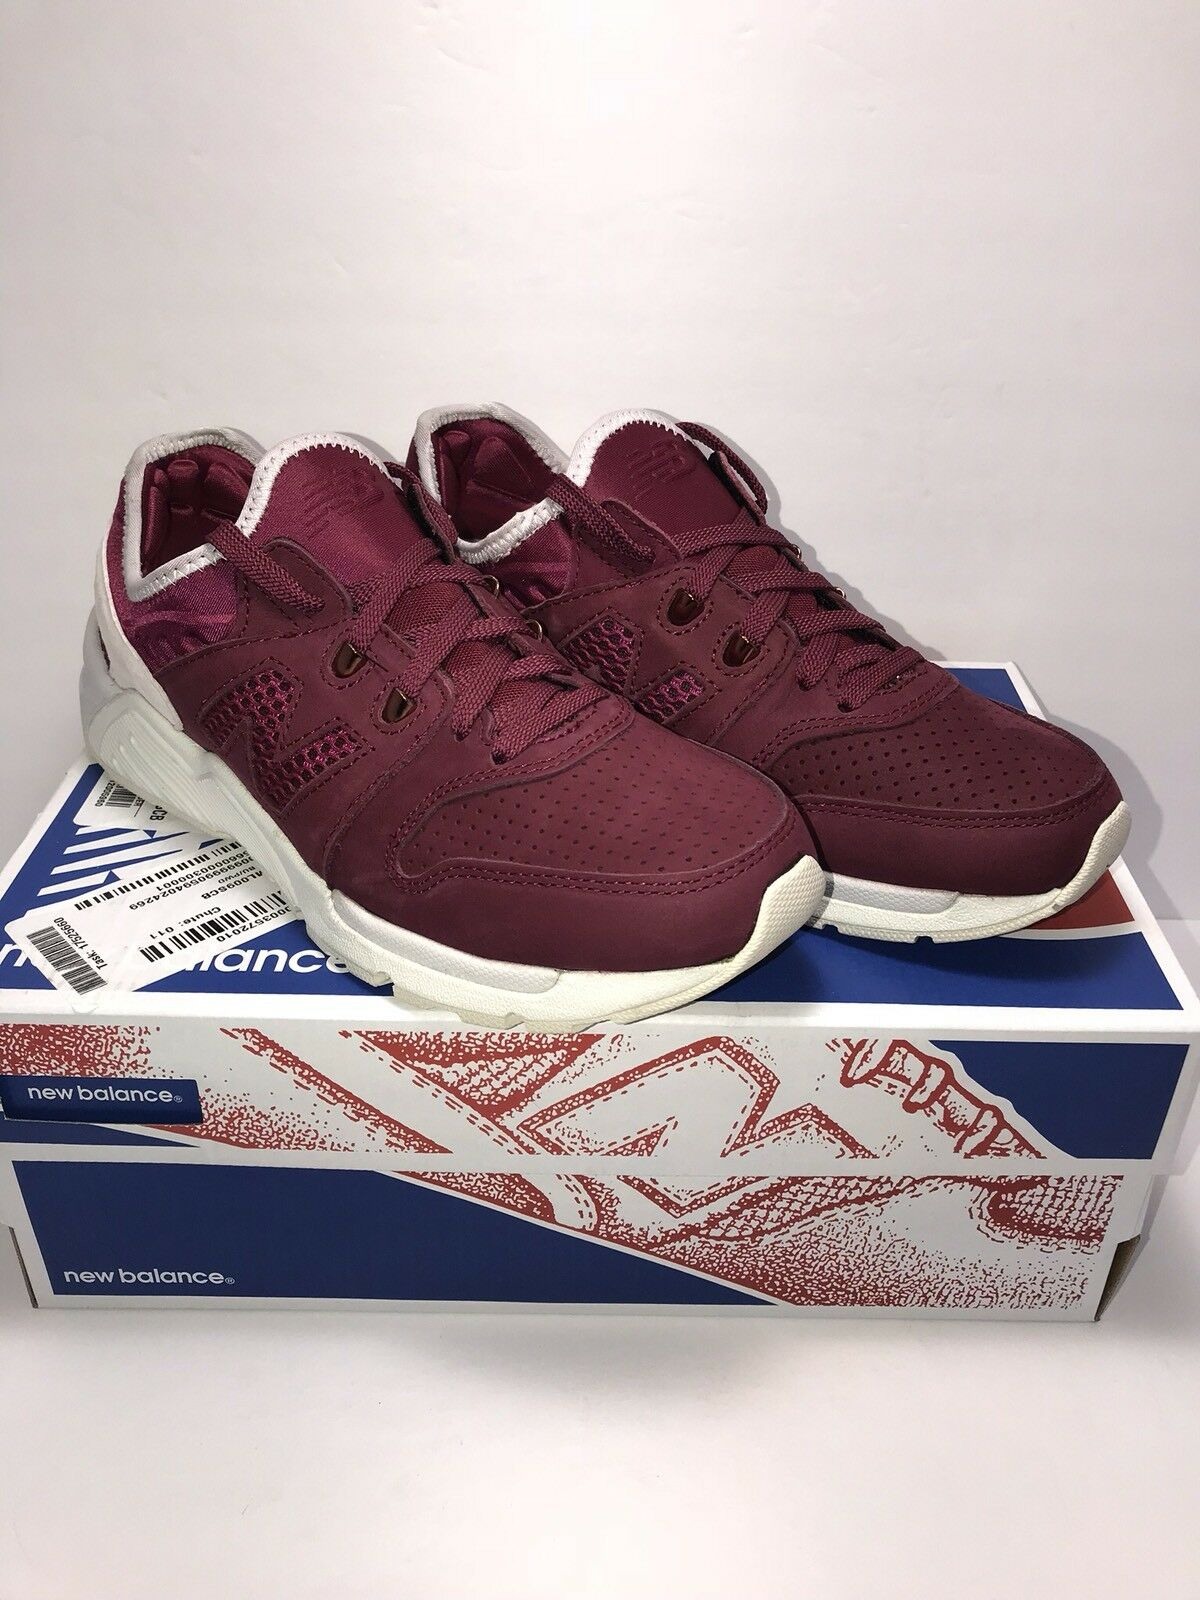 New Balance 009 Mens Size 7 Street Couture Collection Burgundy Athletic shoes